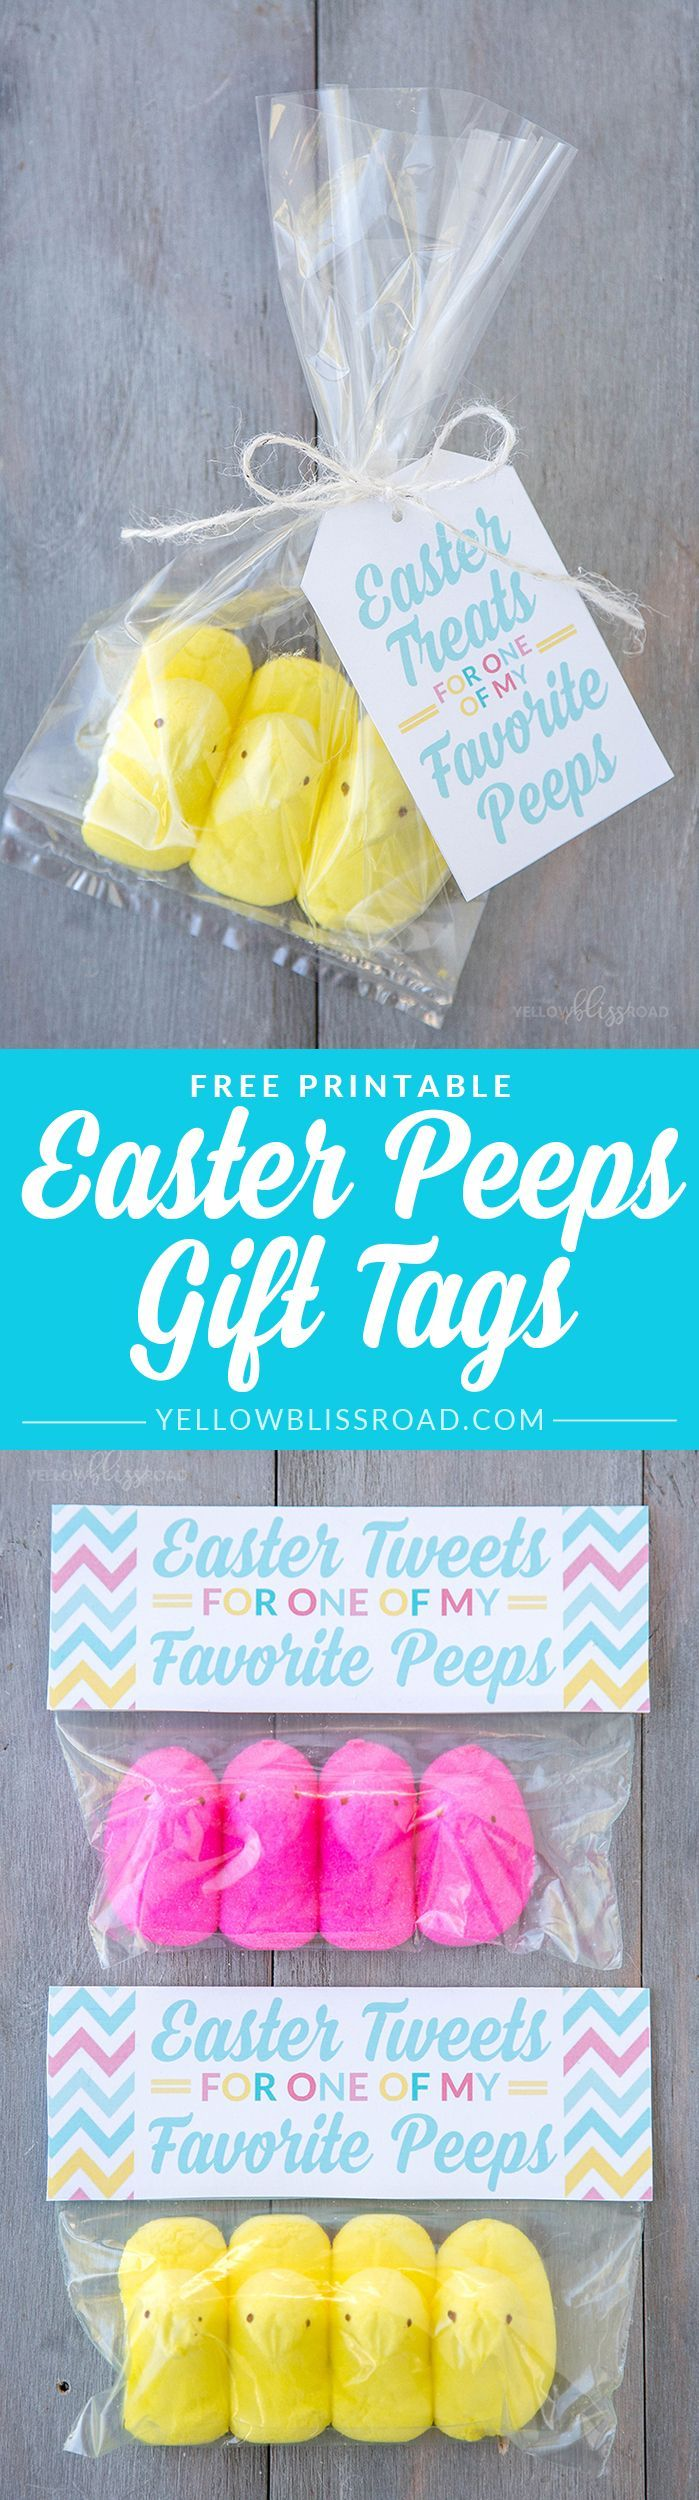 Peeps easter gift idea with free printables free printable gift free printable peeps easter gift tags use these free printable gift tags to make sweet negle Image collections